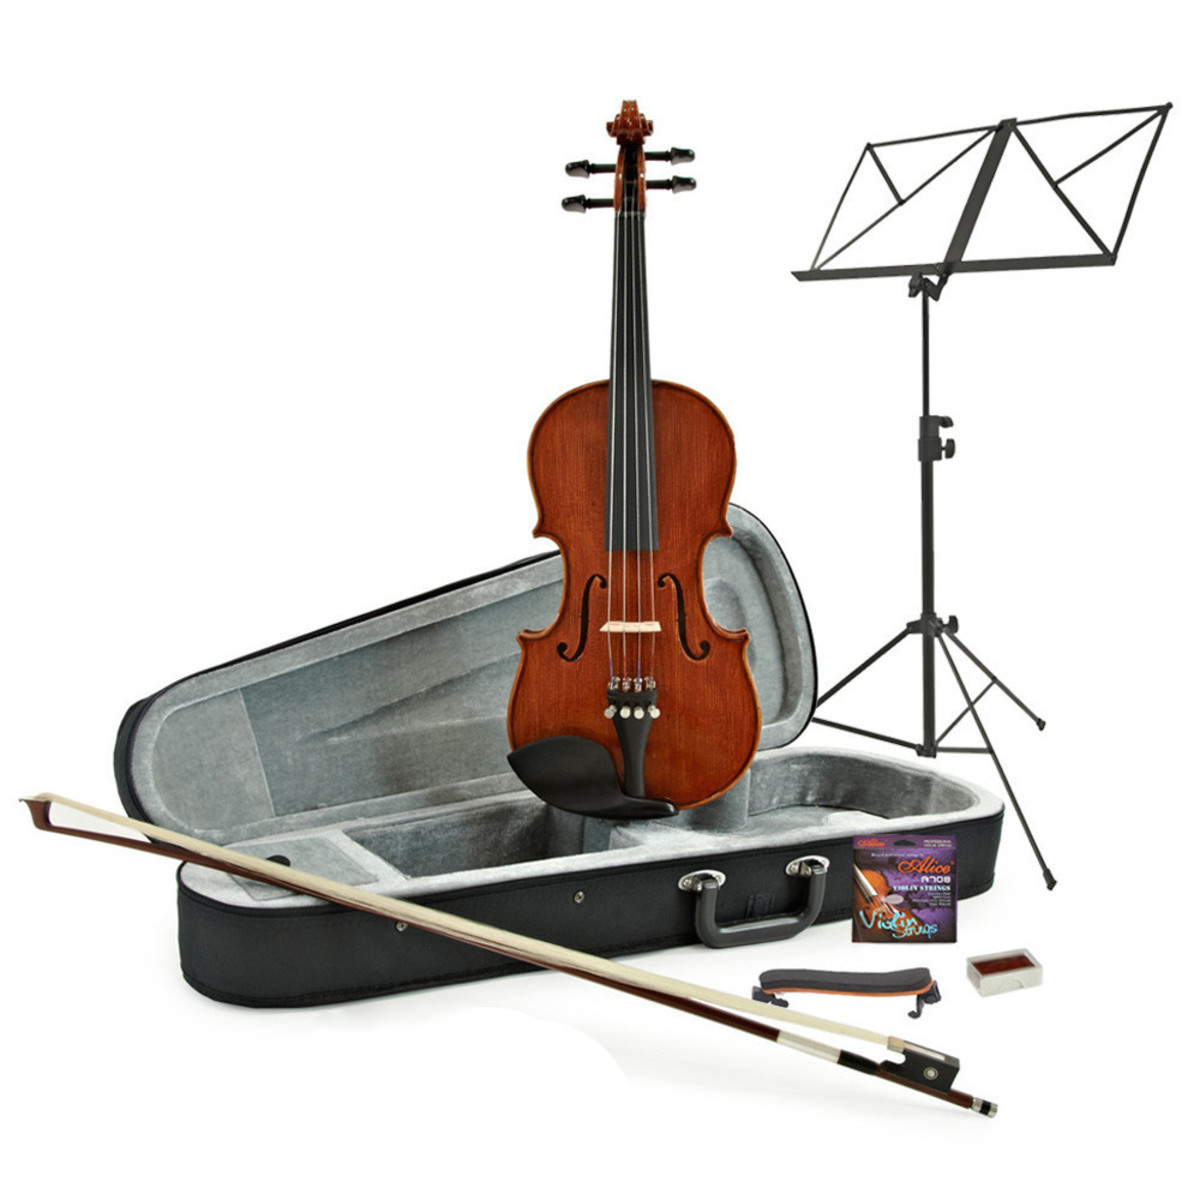 Image of Deluxe 1/4 Violin + Accessory Pack by Gear4Music